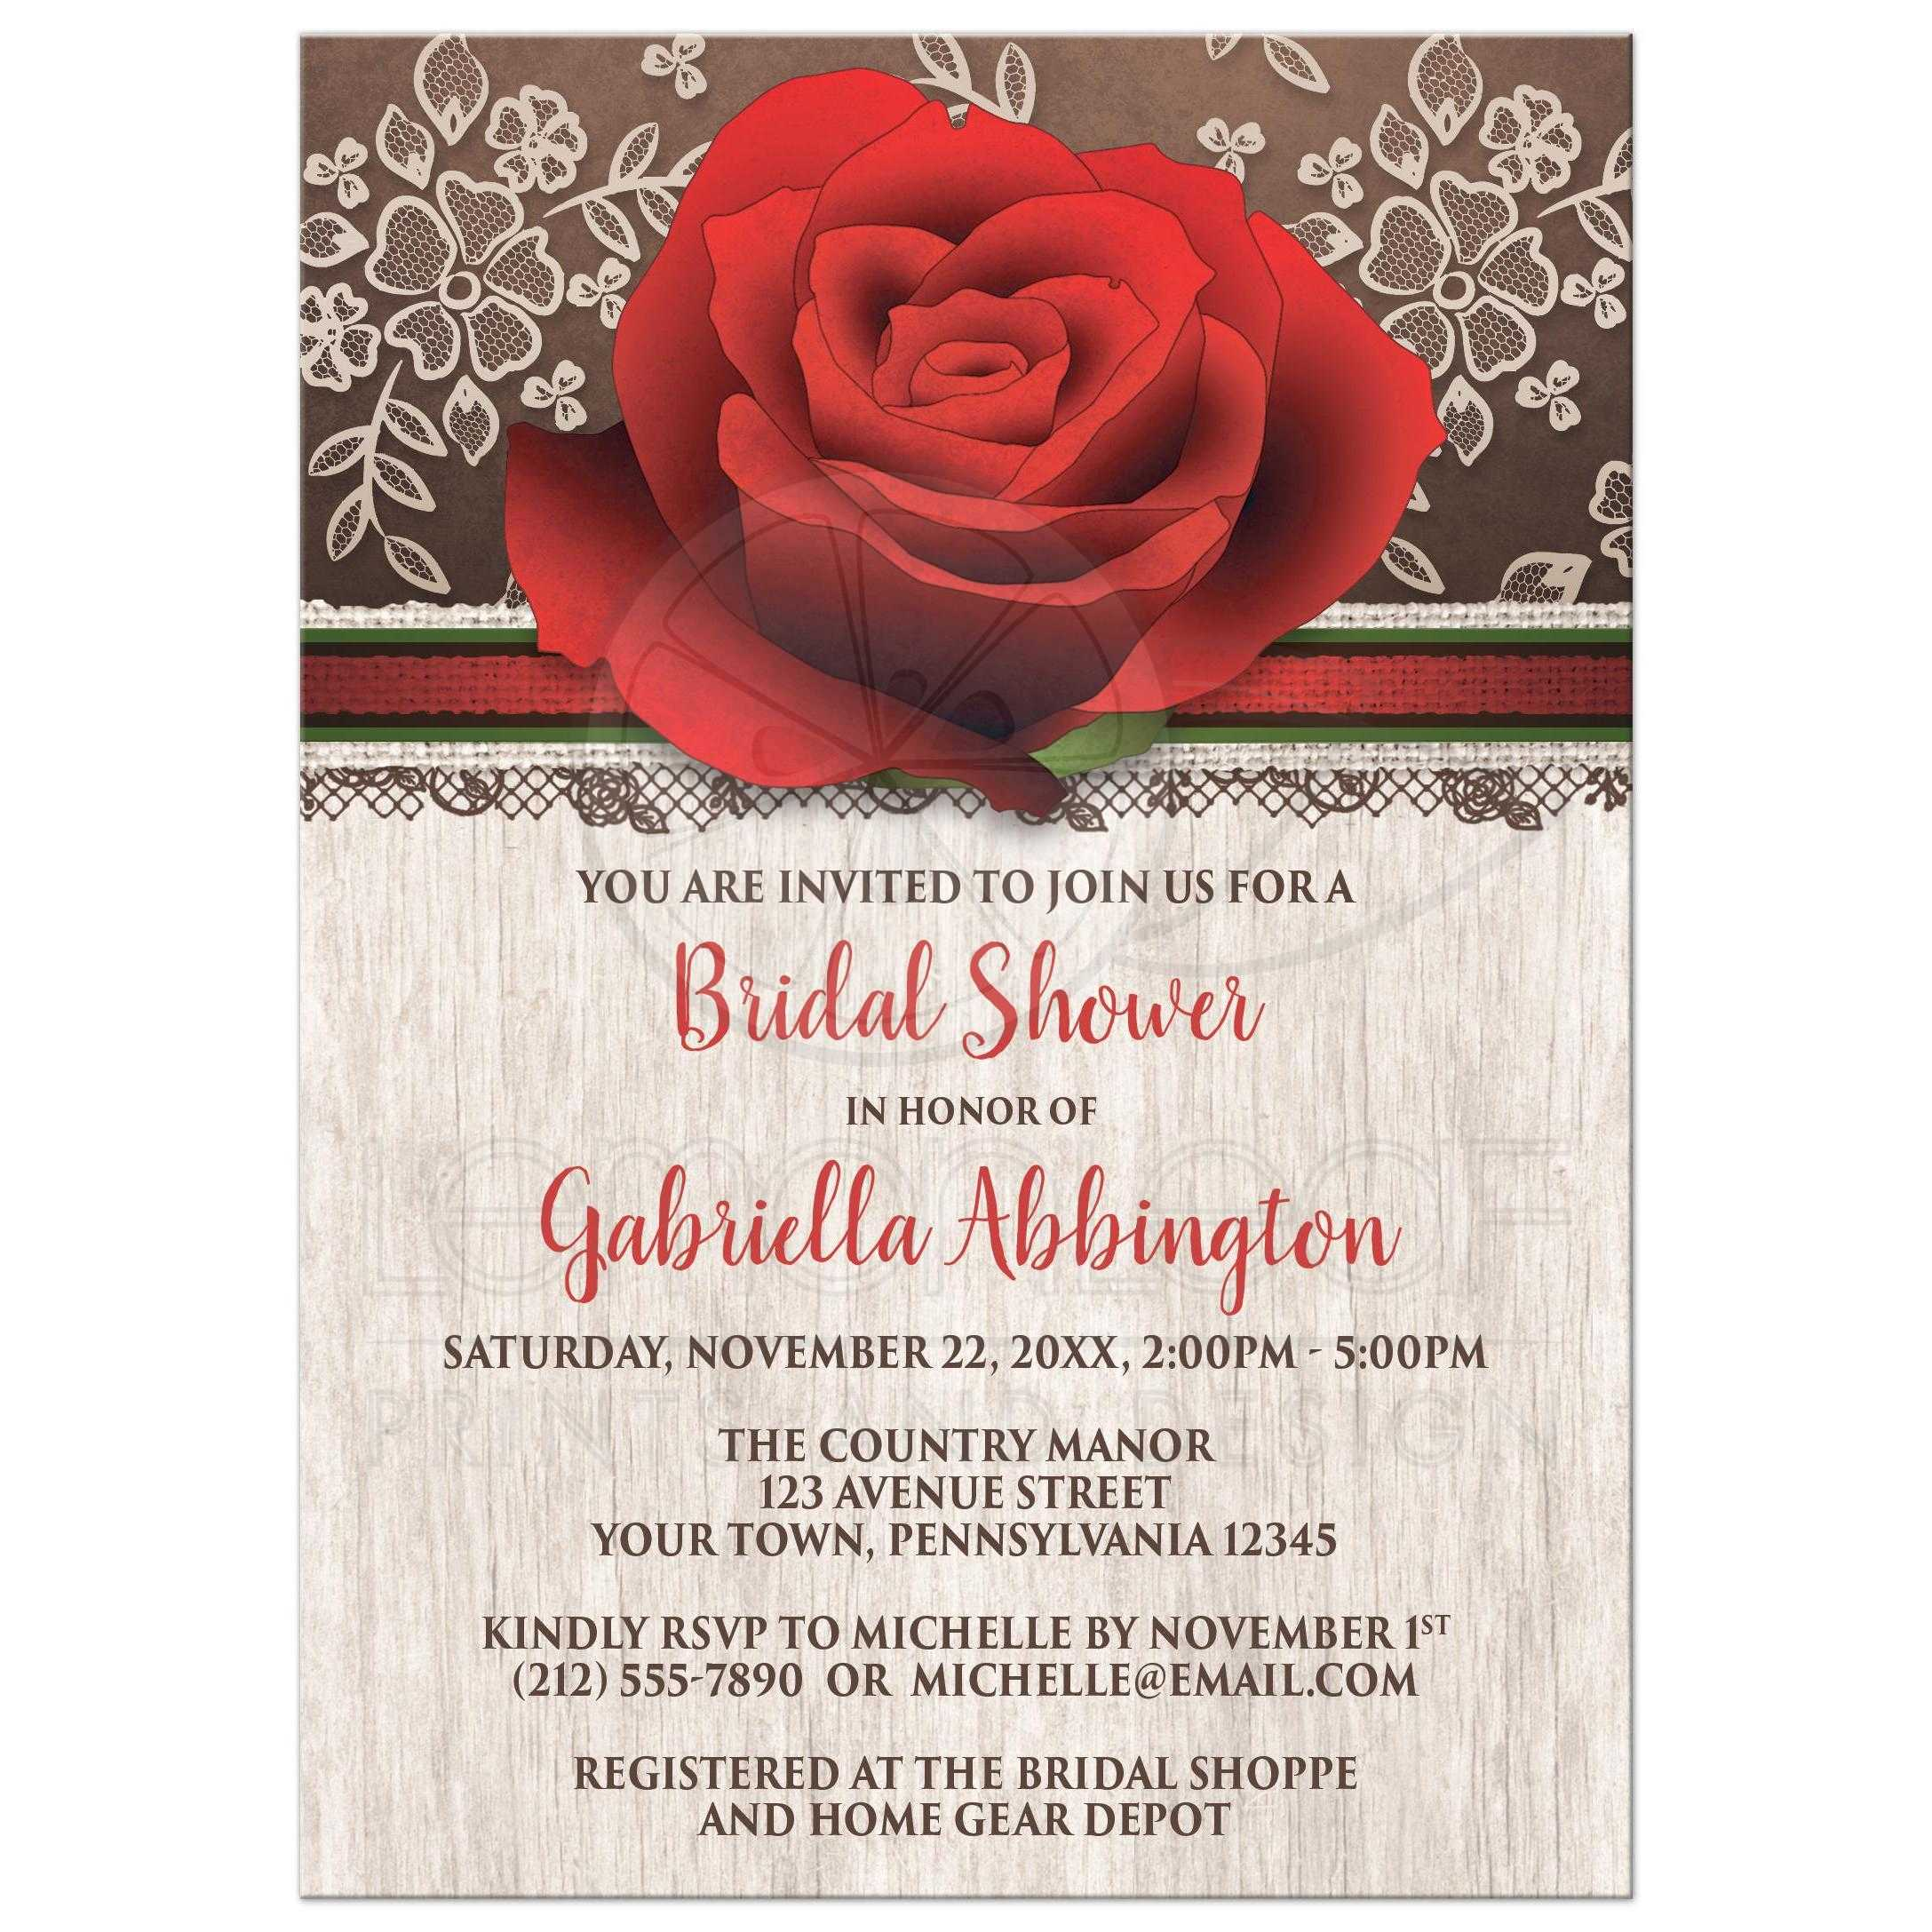 Shower Invitations Rustic Wood Lace Red Rose Brown